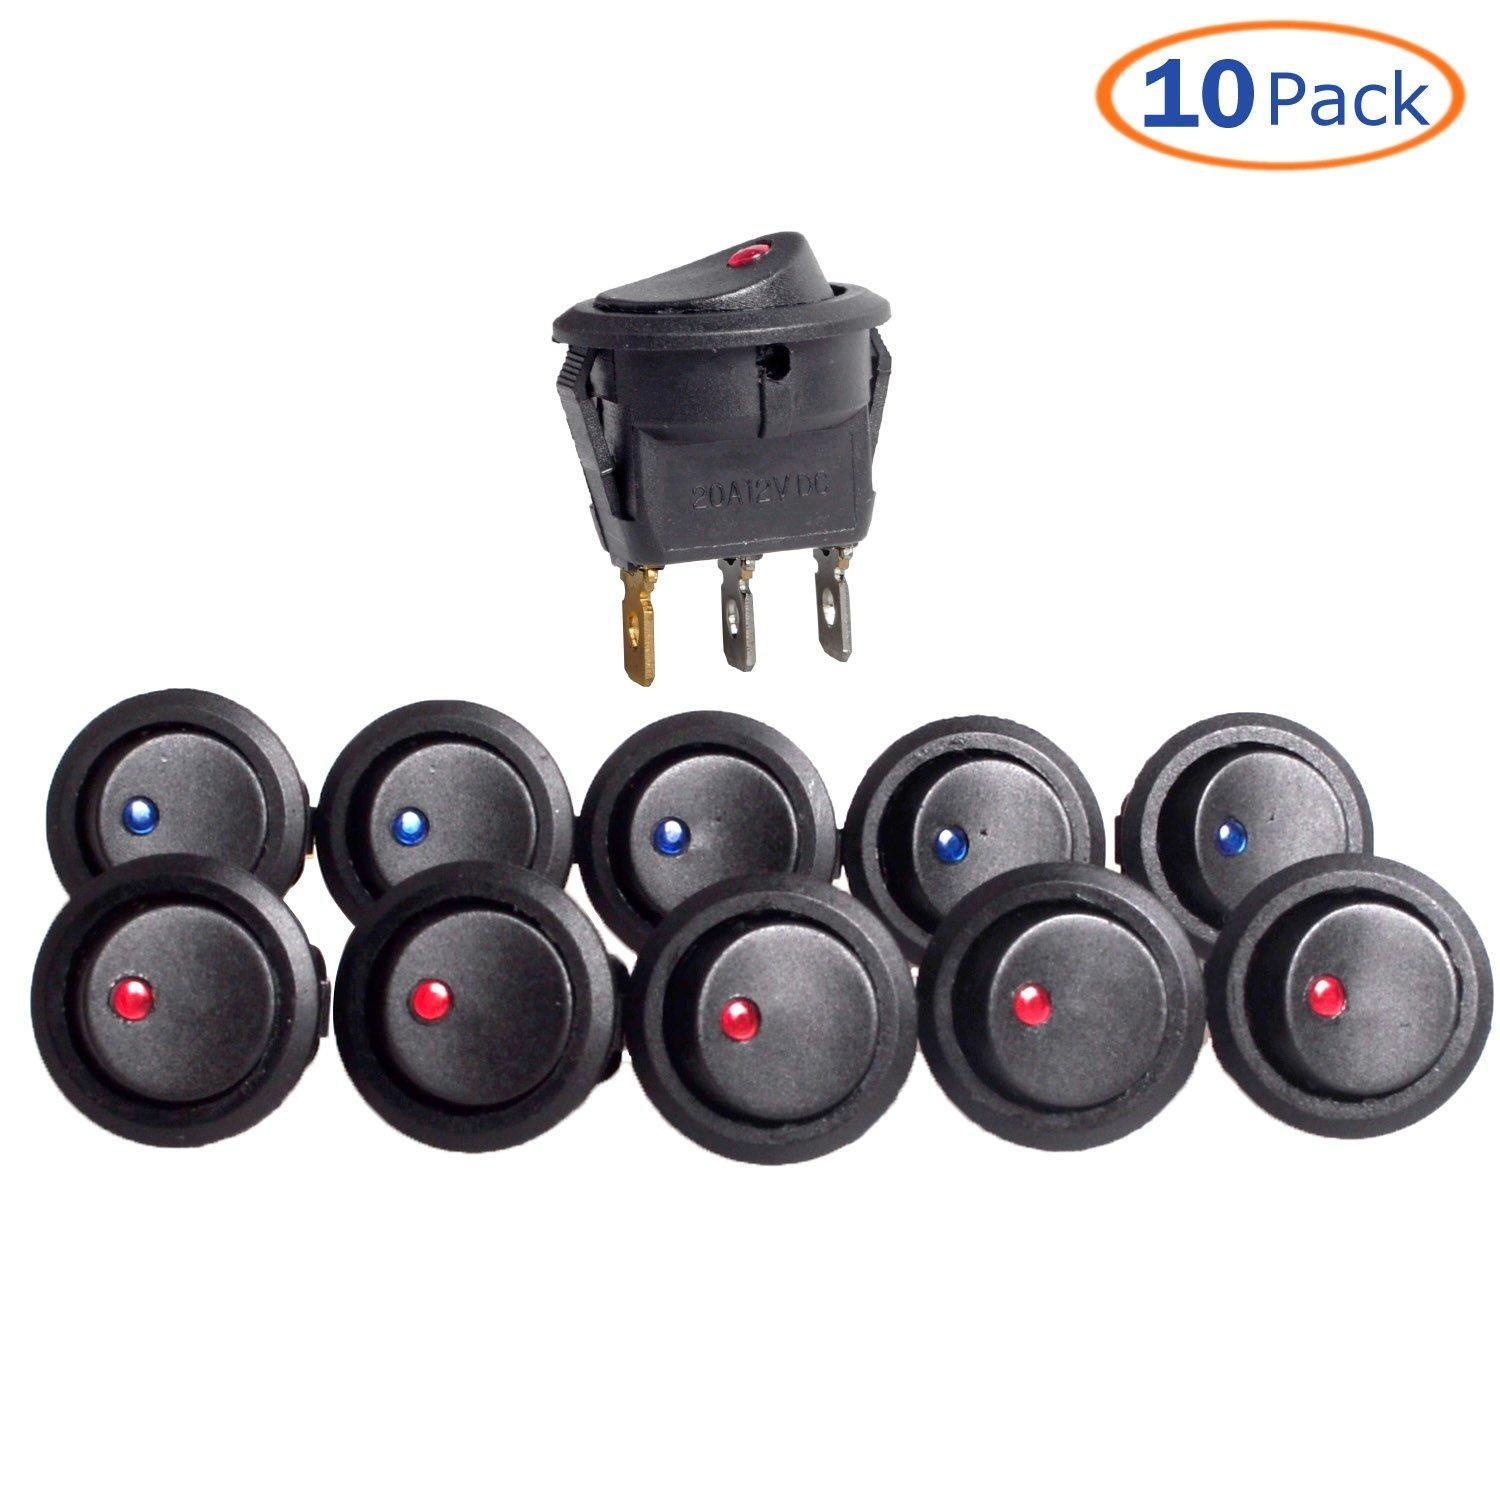 Online Store Conwork 10 Pack 20a 12v Round Rocker Toggle Switch 12 Volt On Illuminated Wiring Blue And Red Led Spst